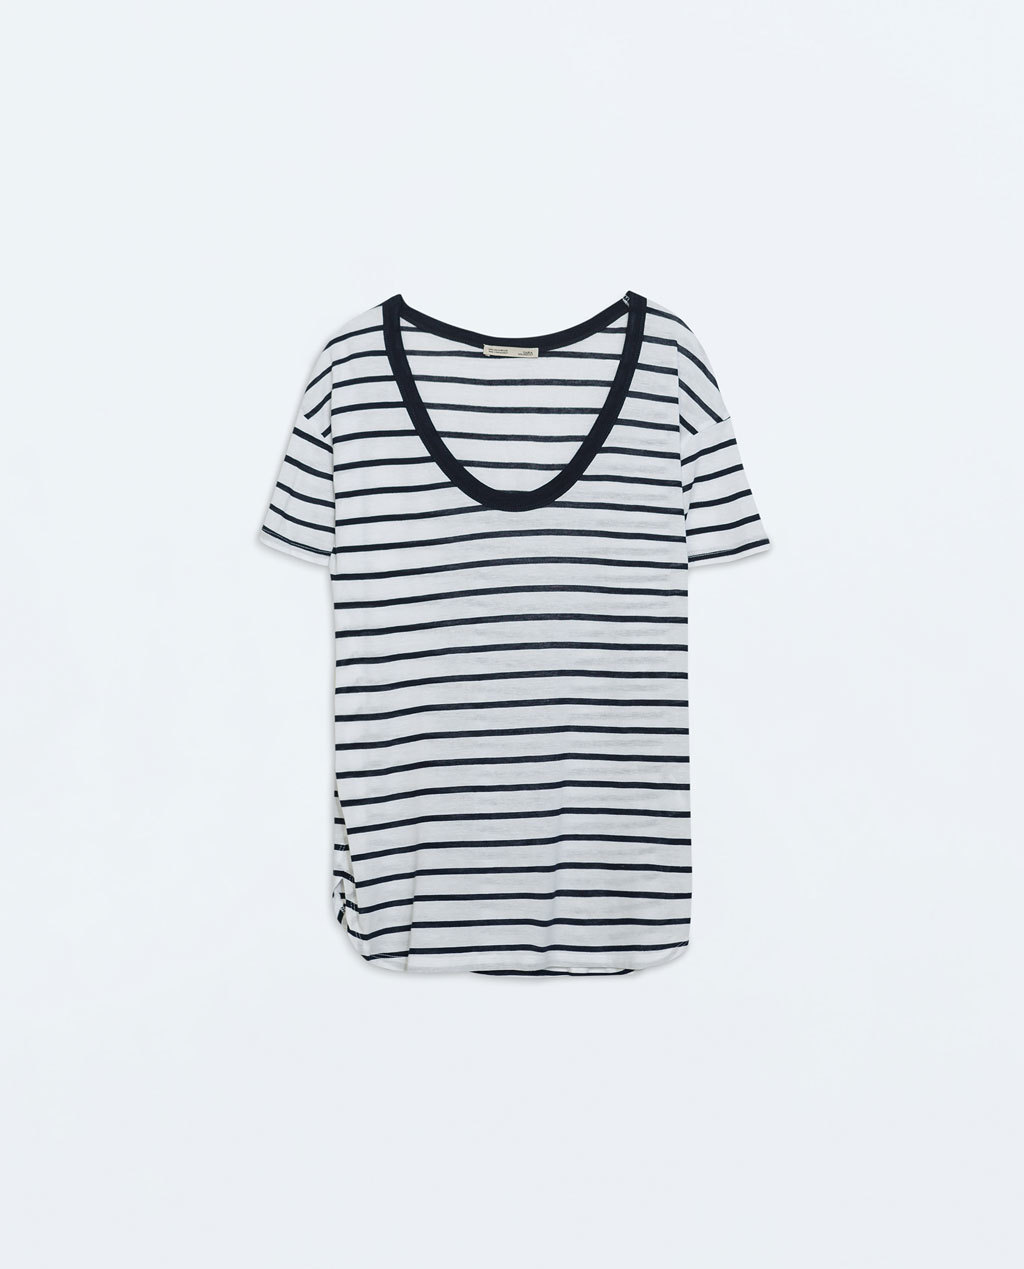 Basic T Shirt - pattern: horizontal stripes; style: t-shirt; predominant colour: white; secondary colour: navy; occasions: casual, creative work; length: standard; neckline: scoop; fibres: cotton - mix; fit: loose; sleeve length: short sleeve; sleeve style: standard; pattern type: fabric; pattern size: standard; texture group: jersey - stretchy/drapey; season: a/w 2014